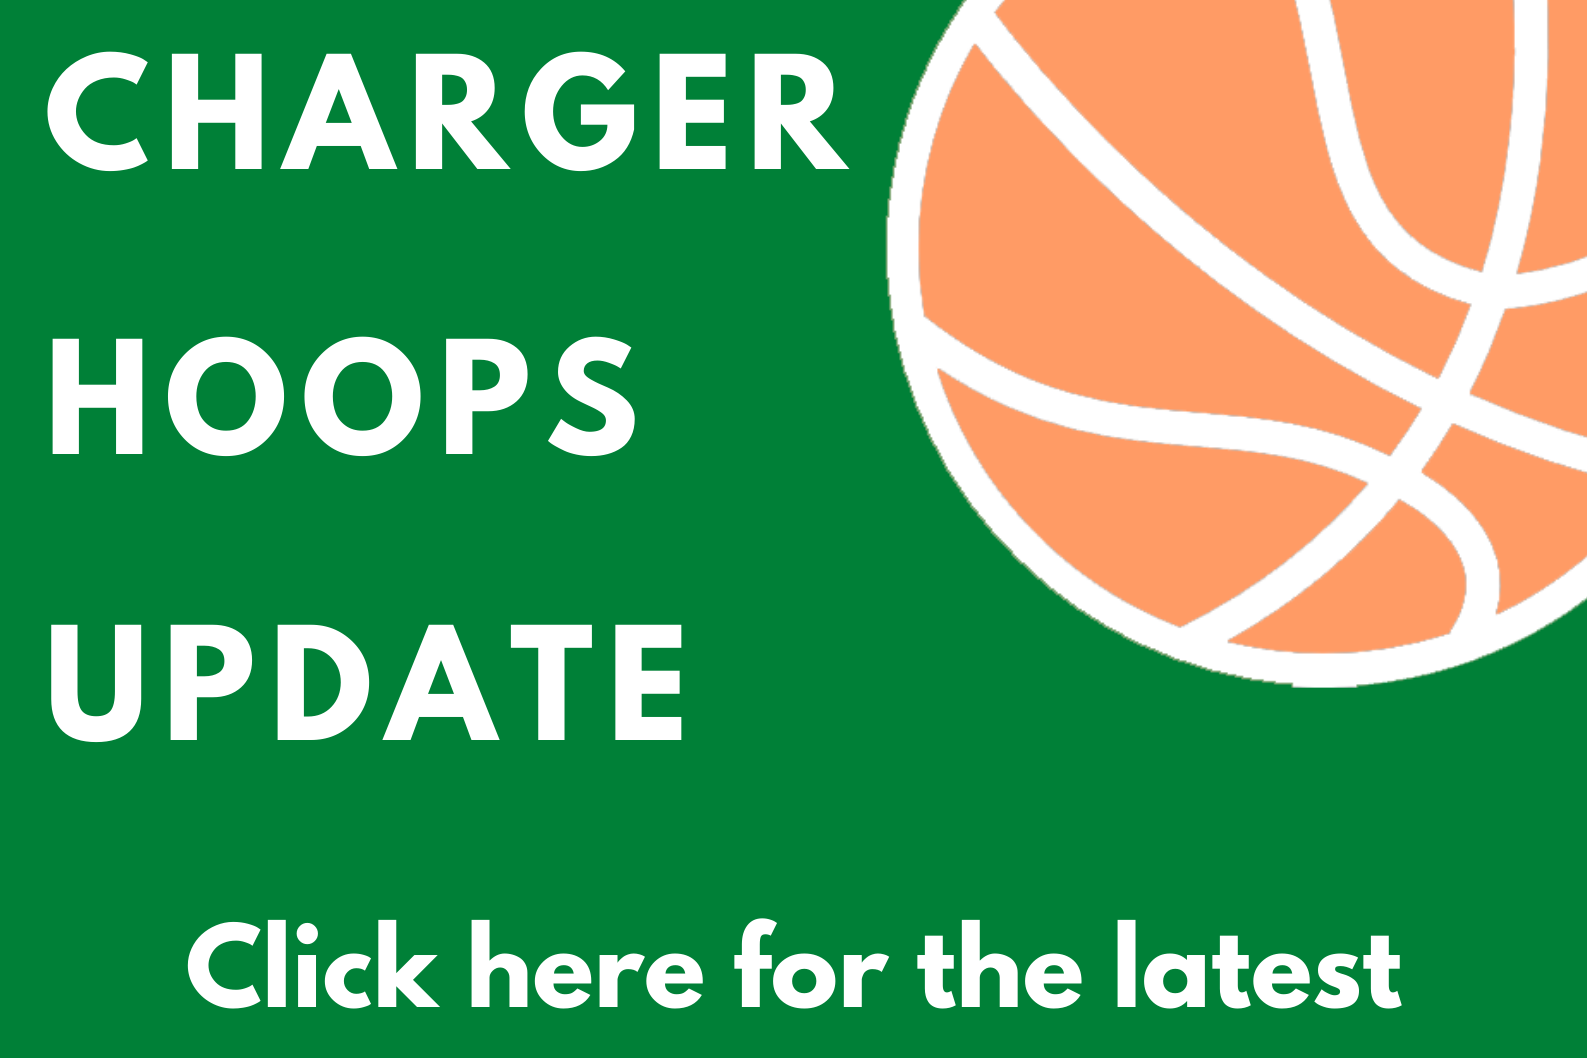 Charger Hoops COVID Update Tile